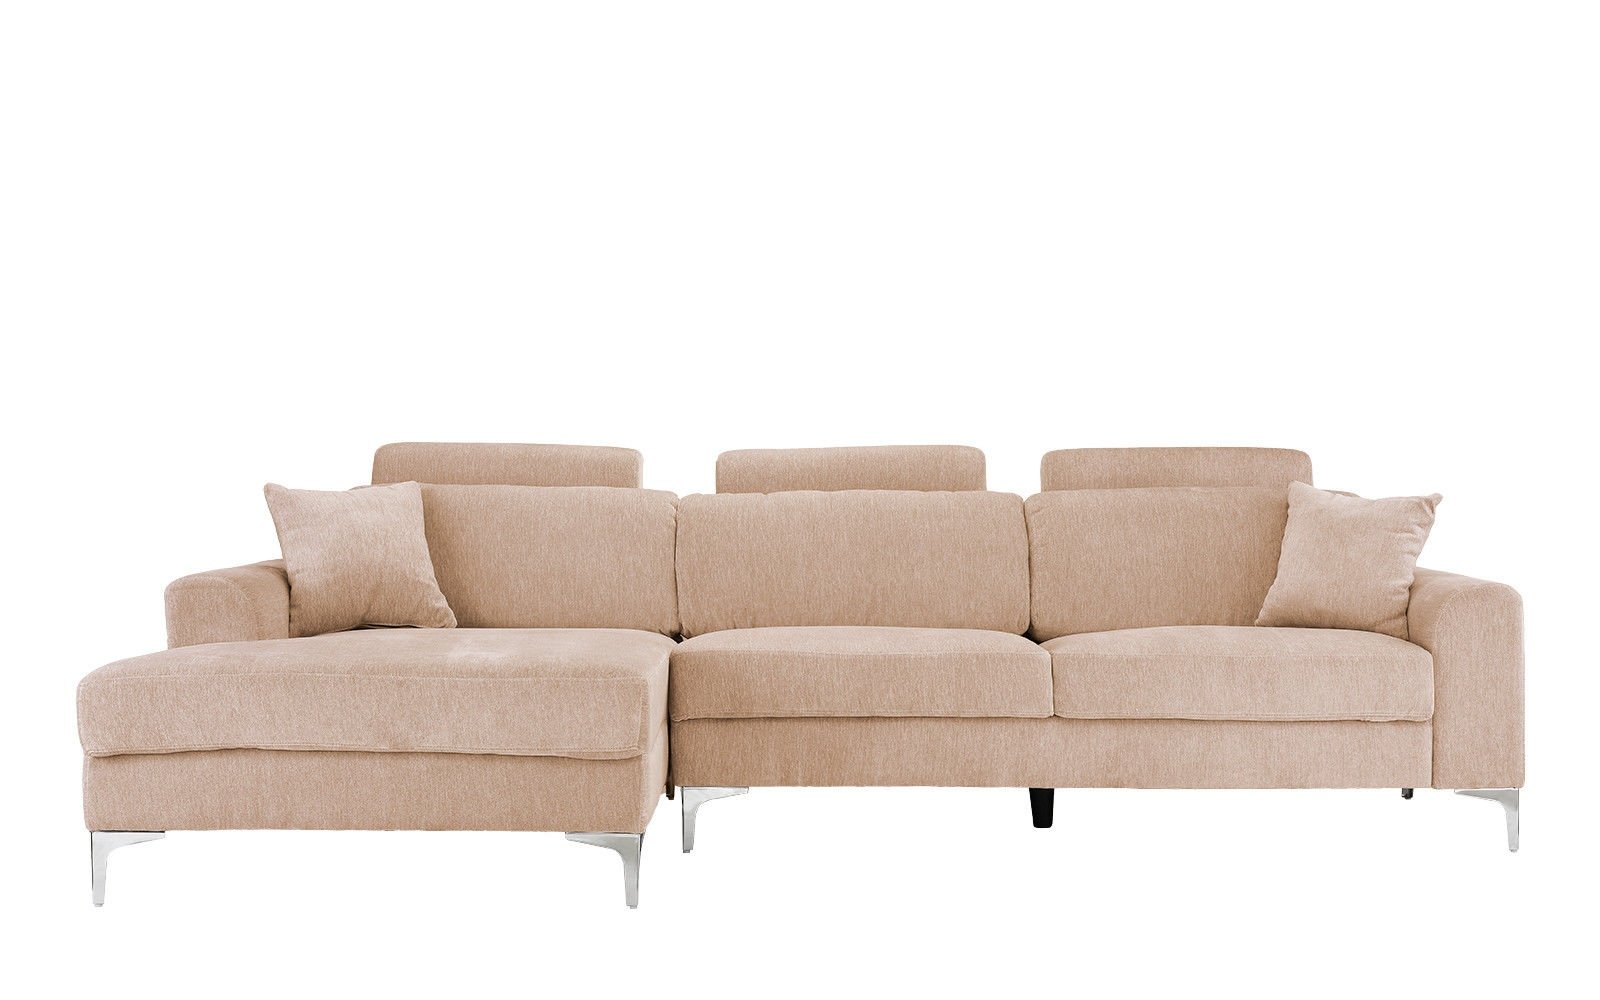 Large Family Room Furniture Sectional, L Shape Couch Extra ...